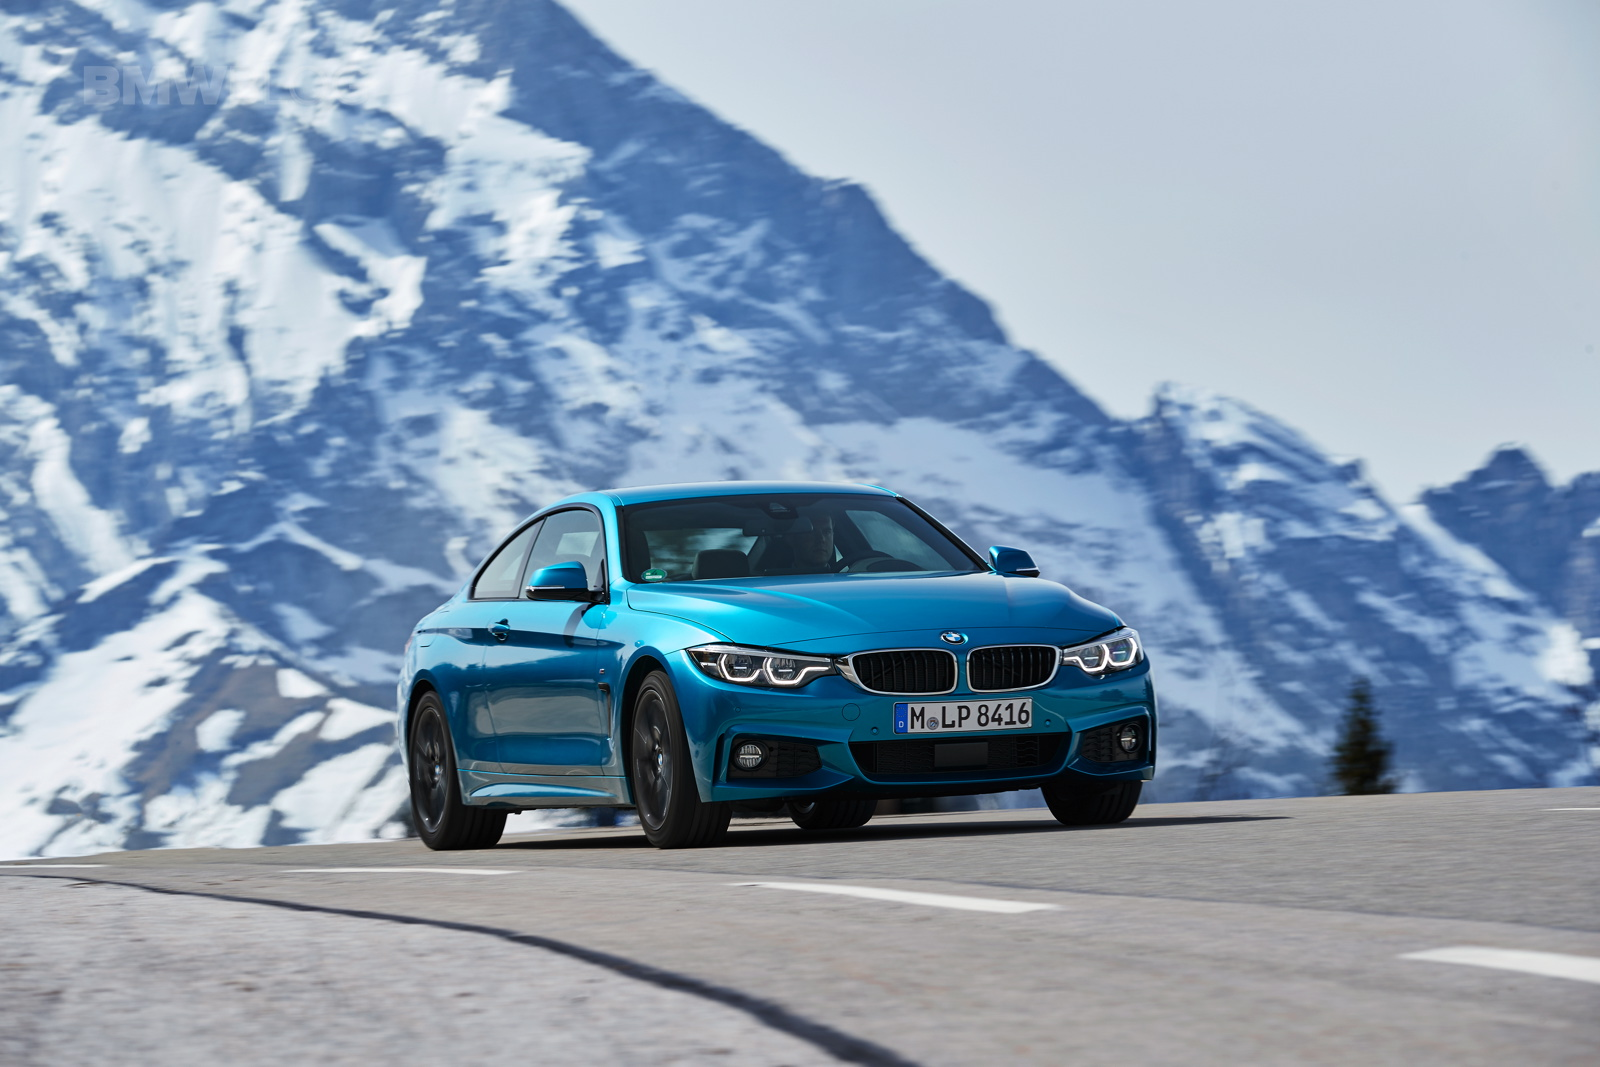 2017 Bmw 440i Coupe | Best new cars for 2018